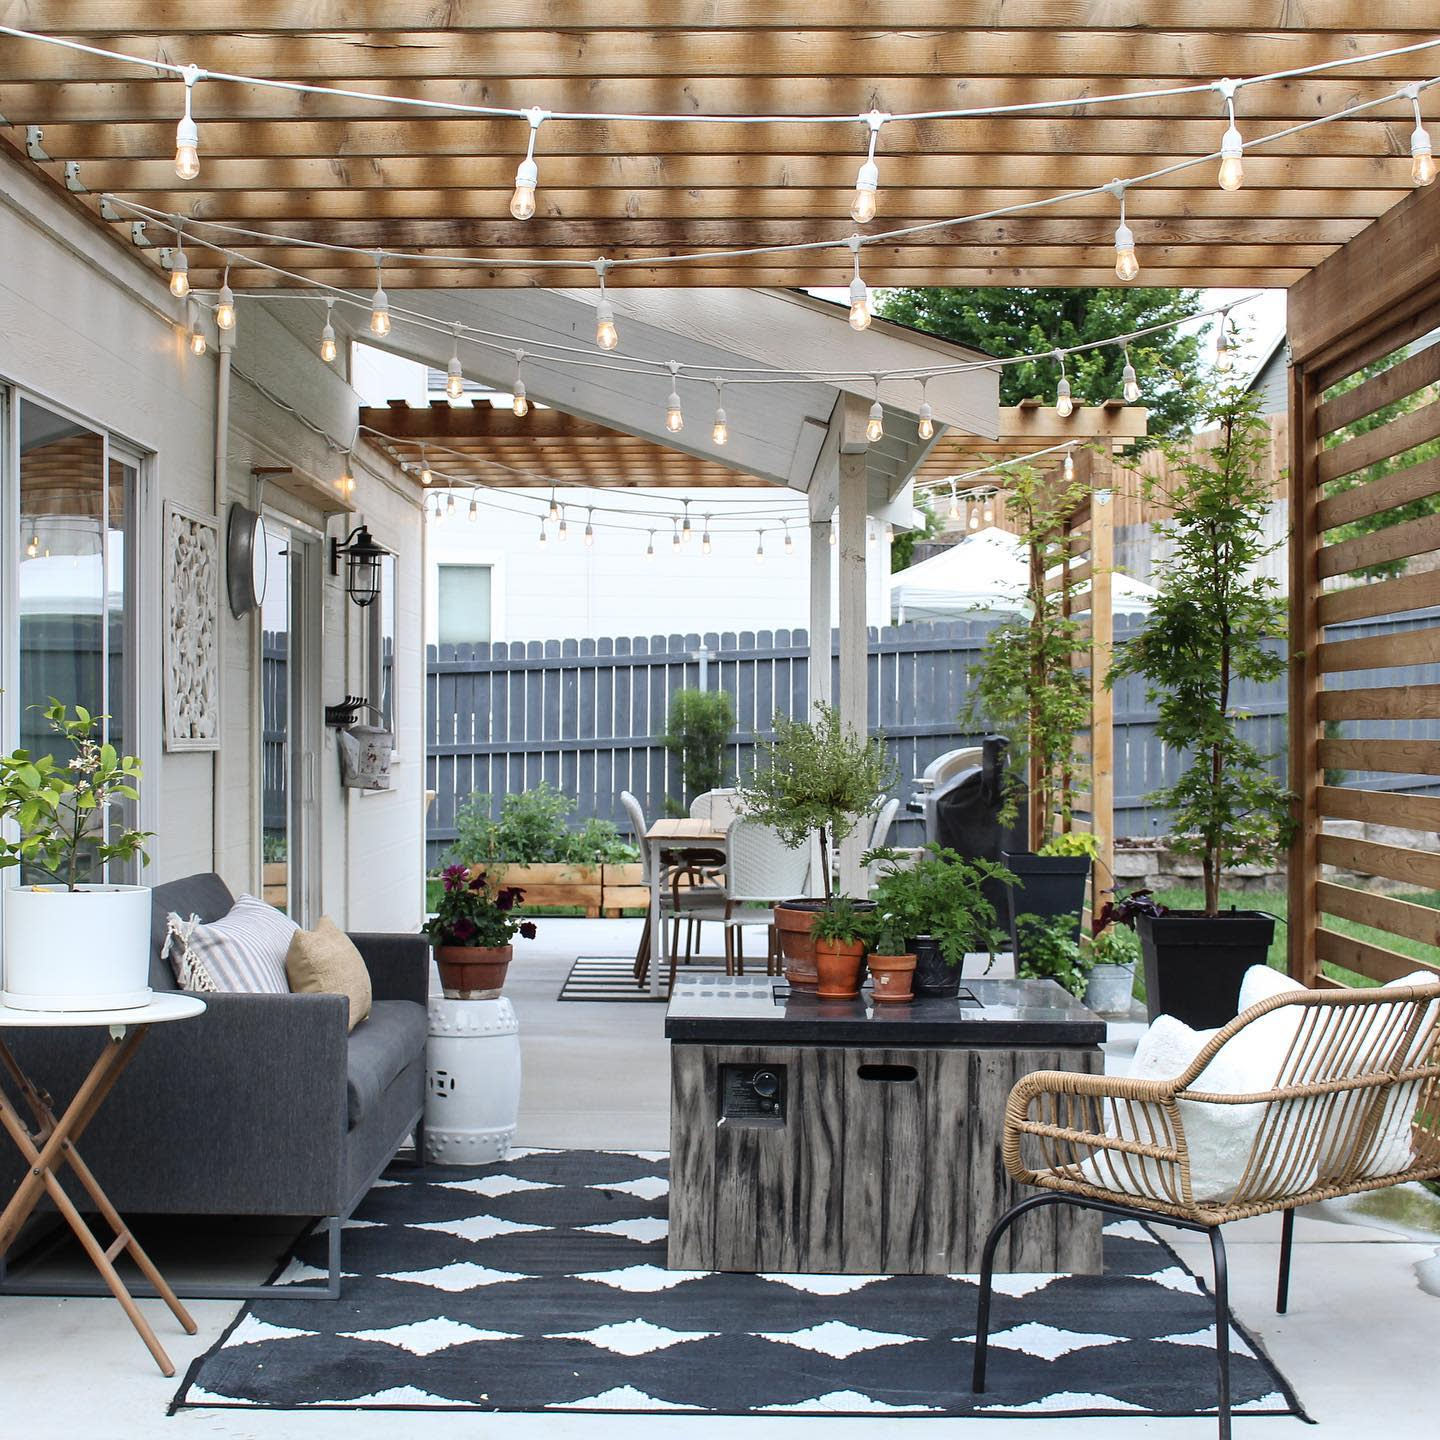 Vertical Outdoor Shade Ideas -my.humble.homestead